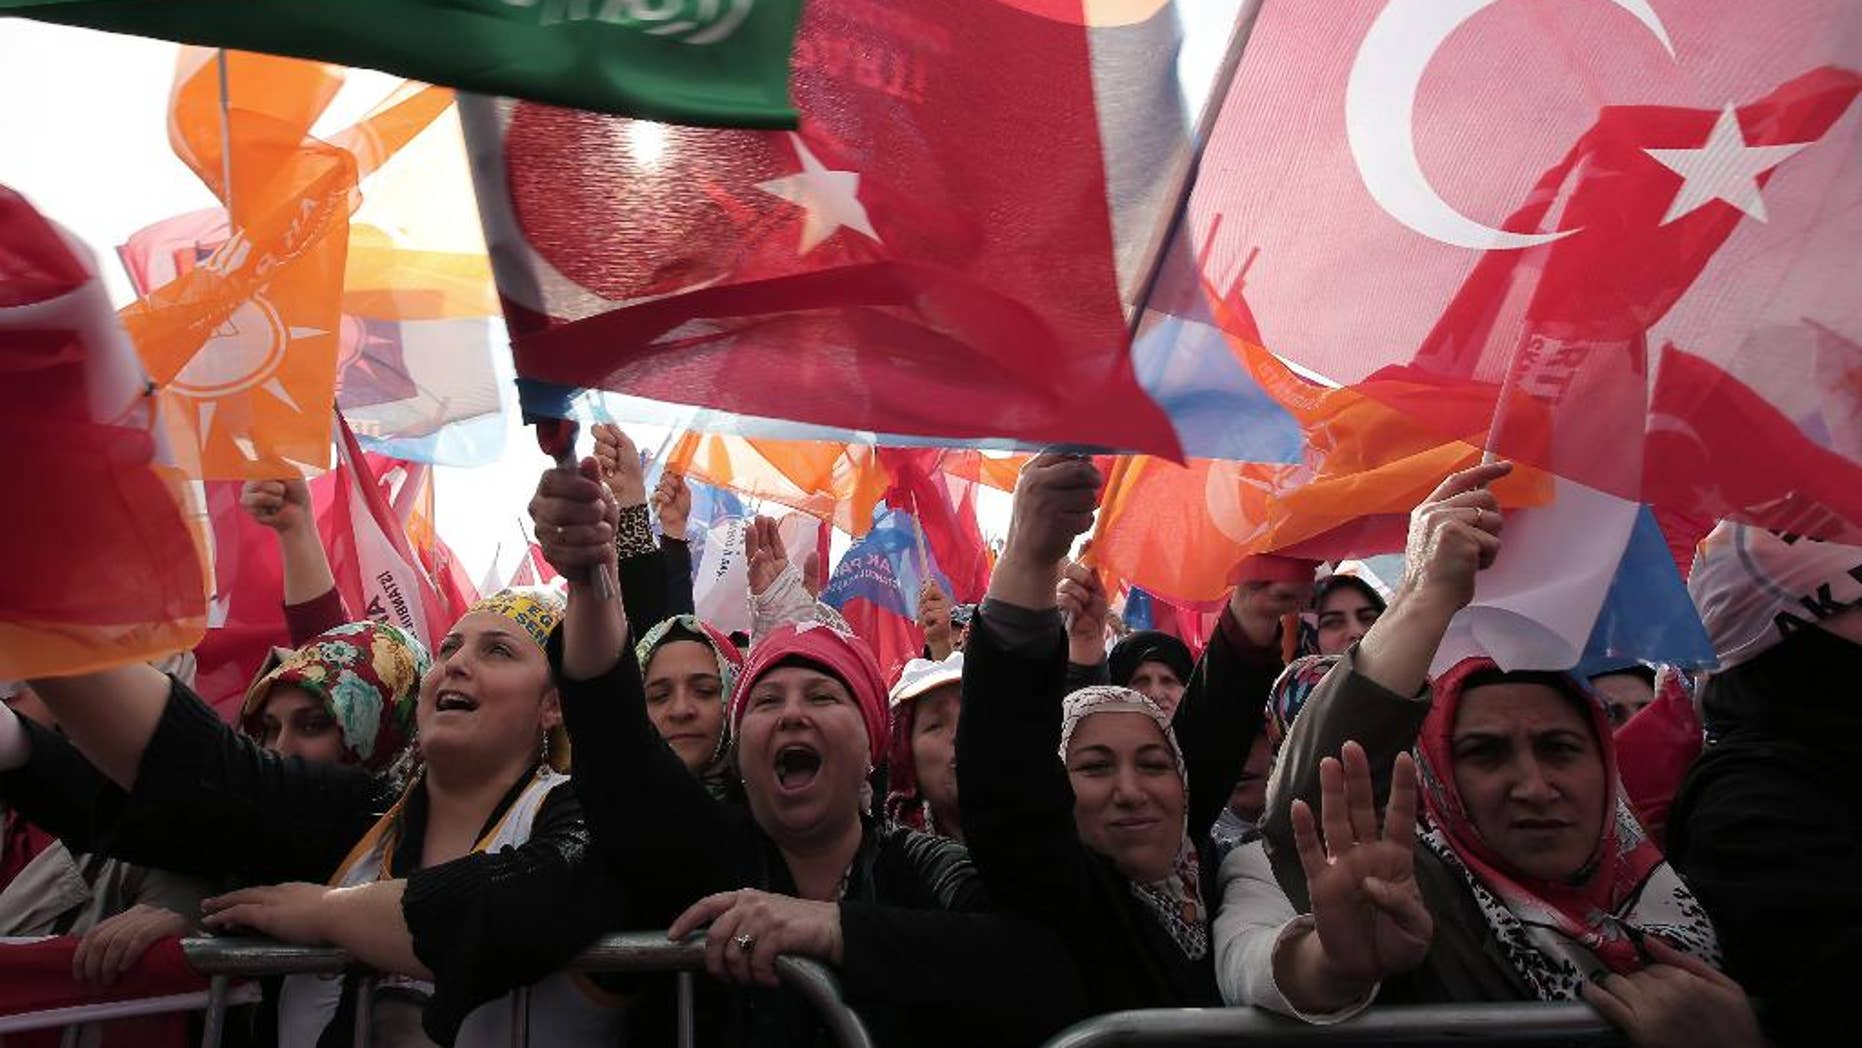 The supporters listen to Turkish Prime Minister Recep Tayyip Erdogan who addressed a rally of his Justice and Development Party in Istanbul, Turkey, Sunday, March 23, 2014. Turkish fighter jets shot down a Syrian warplane after it violated Turkey's airspace Sunday, Erdogan said, in a move likely to ramp up tensions between the two countries already deeply at odds over Syria's civil war. Erdogan is fighting corruption allegations against his government a week before local elections that are seen as a referendum over his rule. (AP Photo/Emrah Gurel)